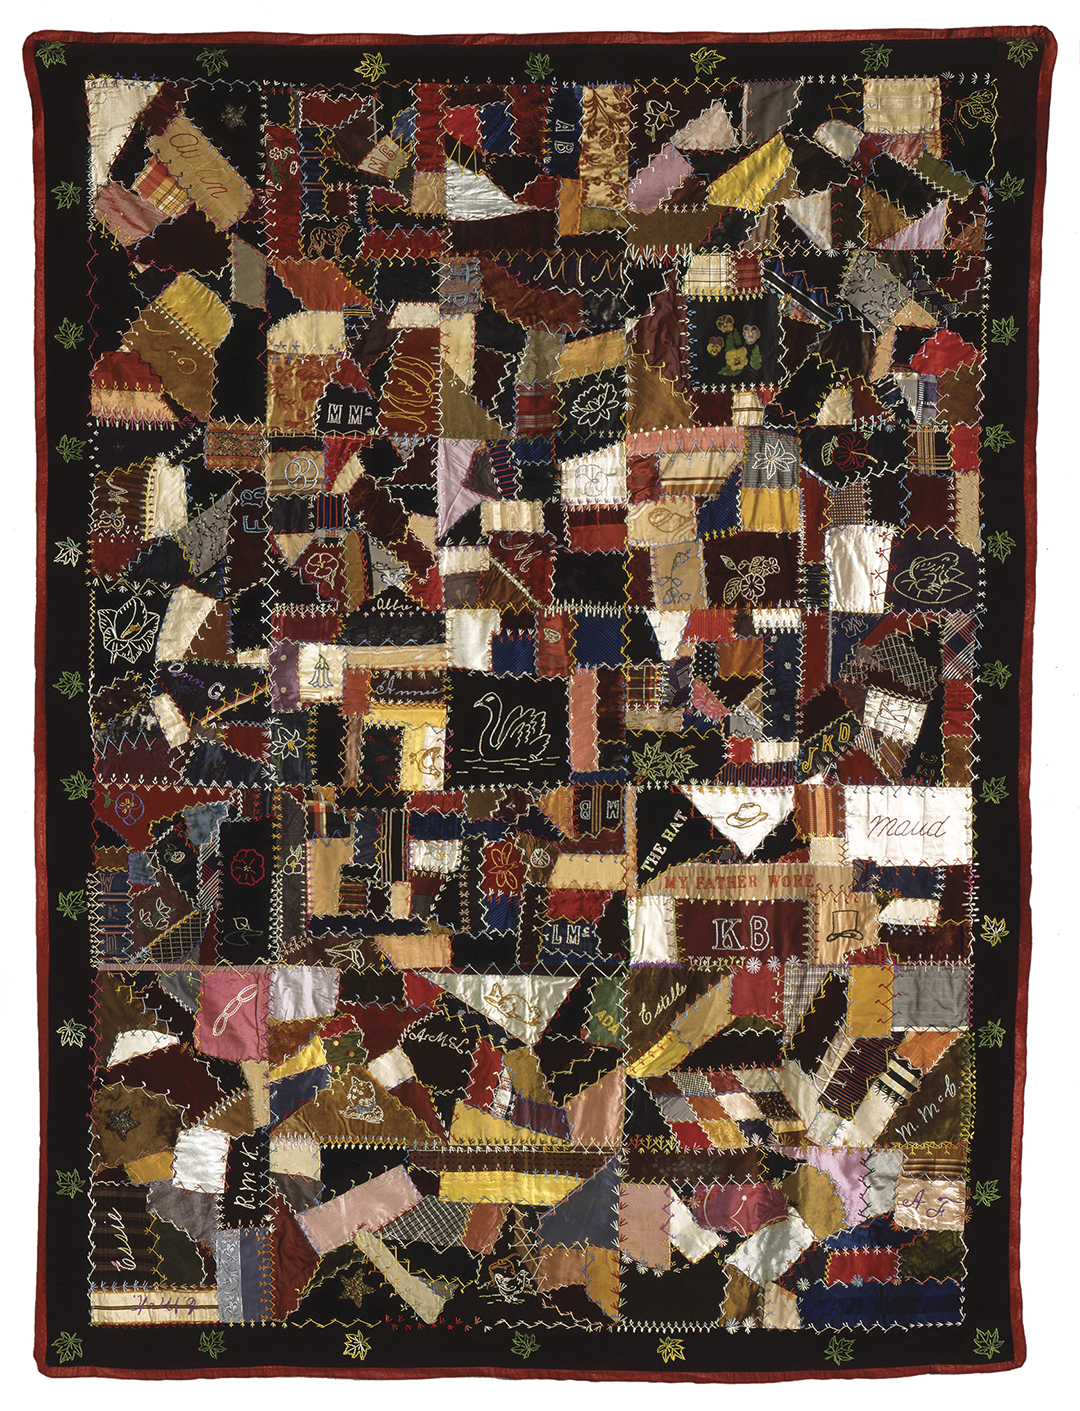 This rectangular coverlet is made of irregular pieces of fabric stitched together with white and coloured thread using traditional quilting techniques. It is embroidered with various motifs (swan, flowers, maple leaves) and names.